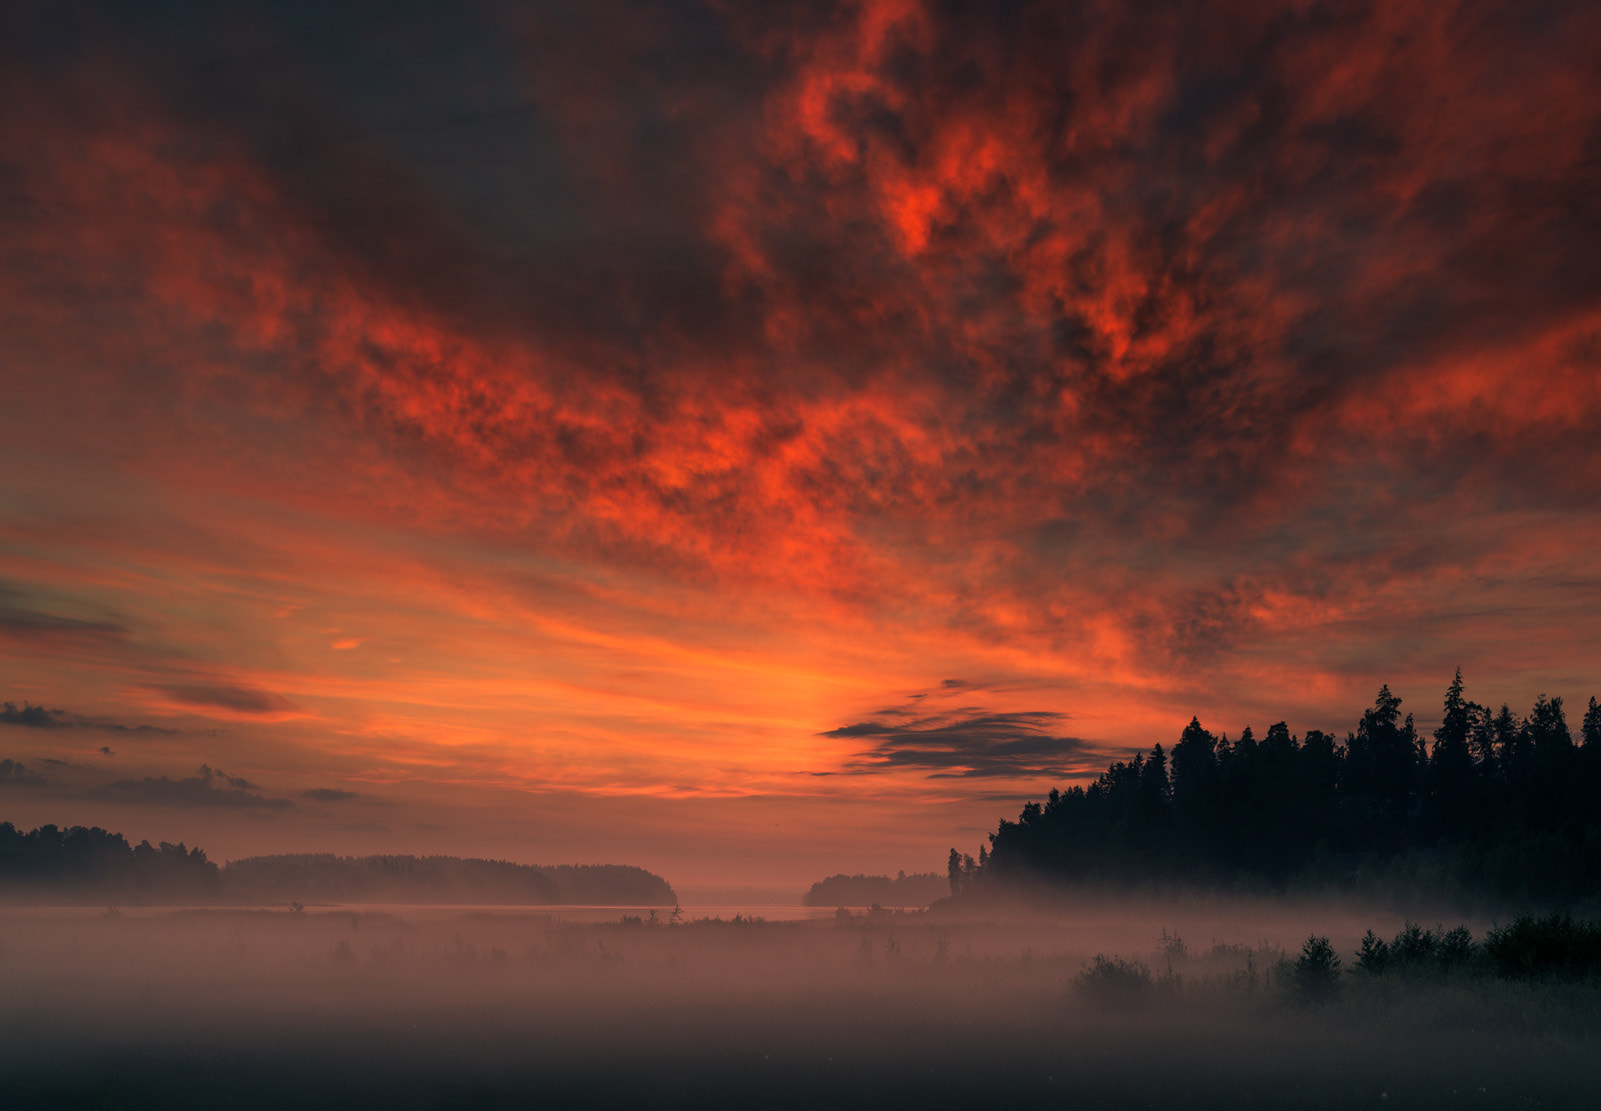 Photograph Dawn II by Mikko Lagerstedt on 500px